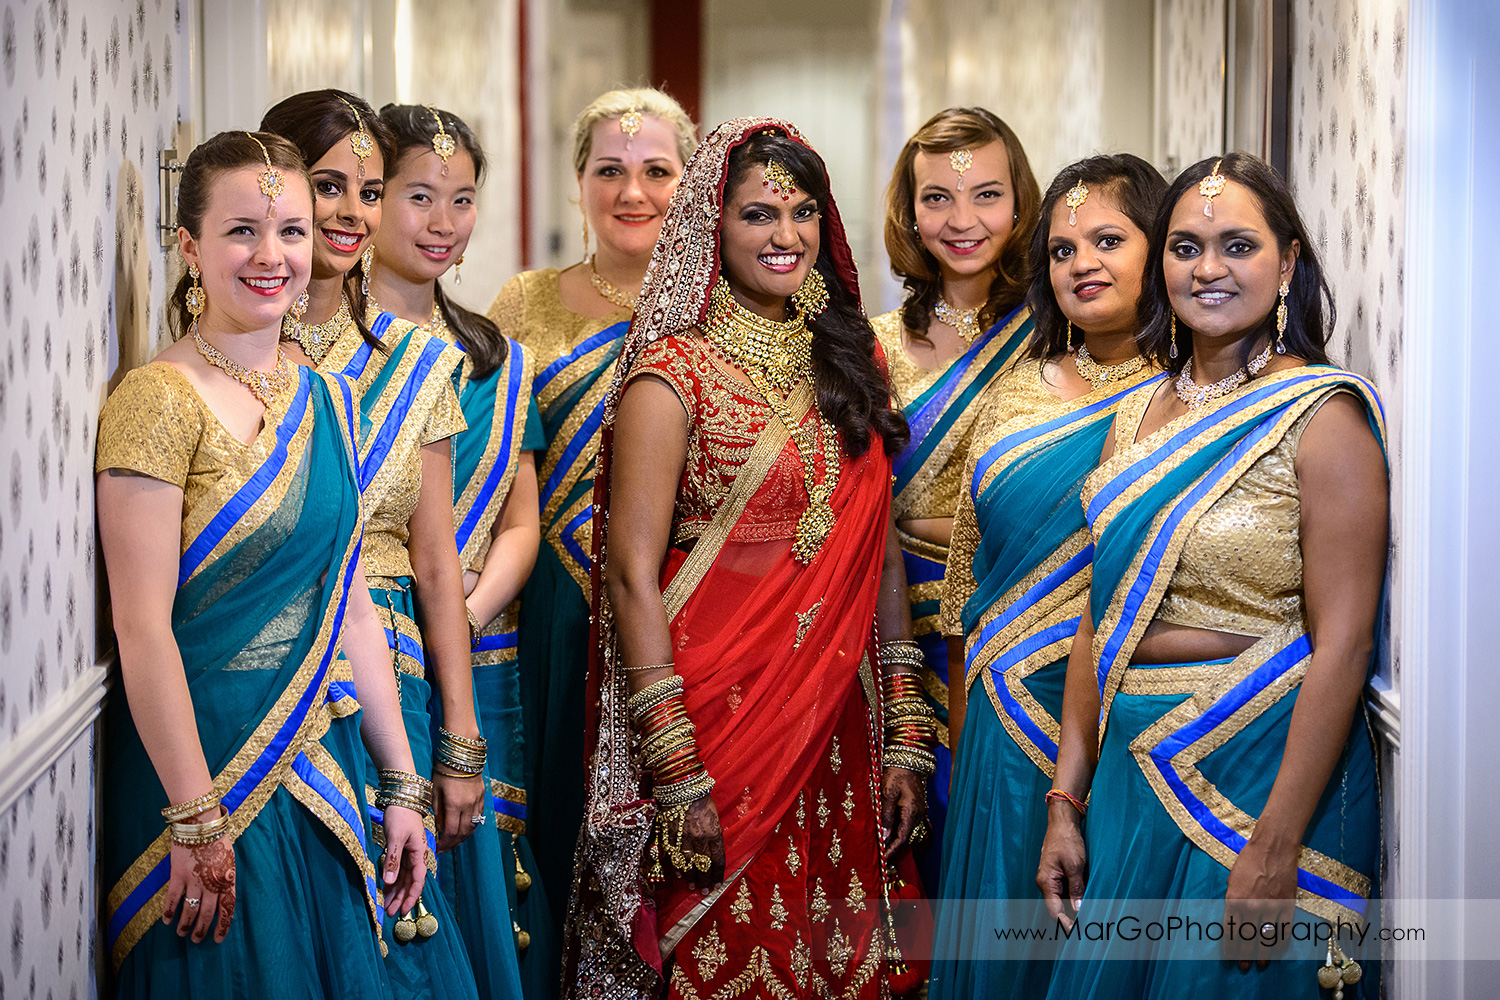 portrait of the indian bride and her bridesmaids at Hotel Shattuck Plaza in Berkeley